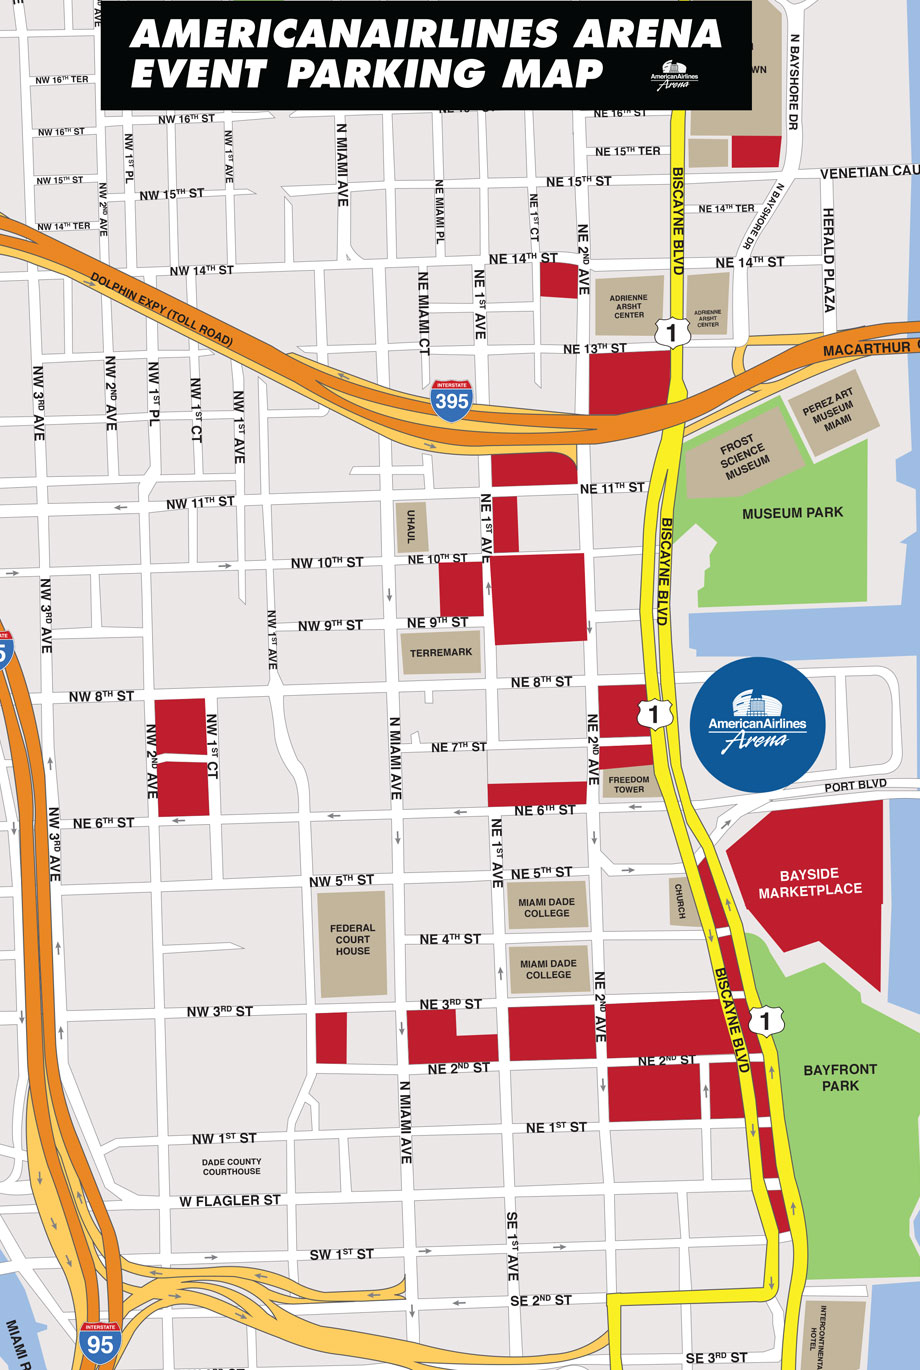 AmericanAirlines Arena Parking Lot Map